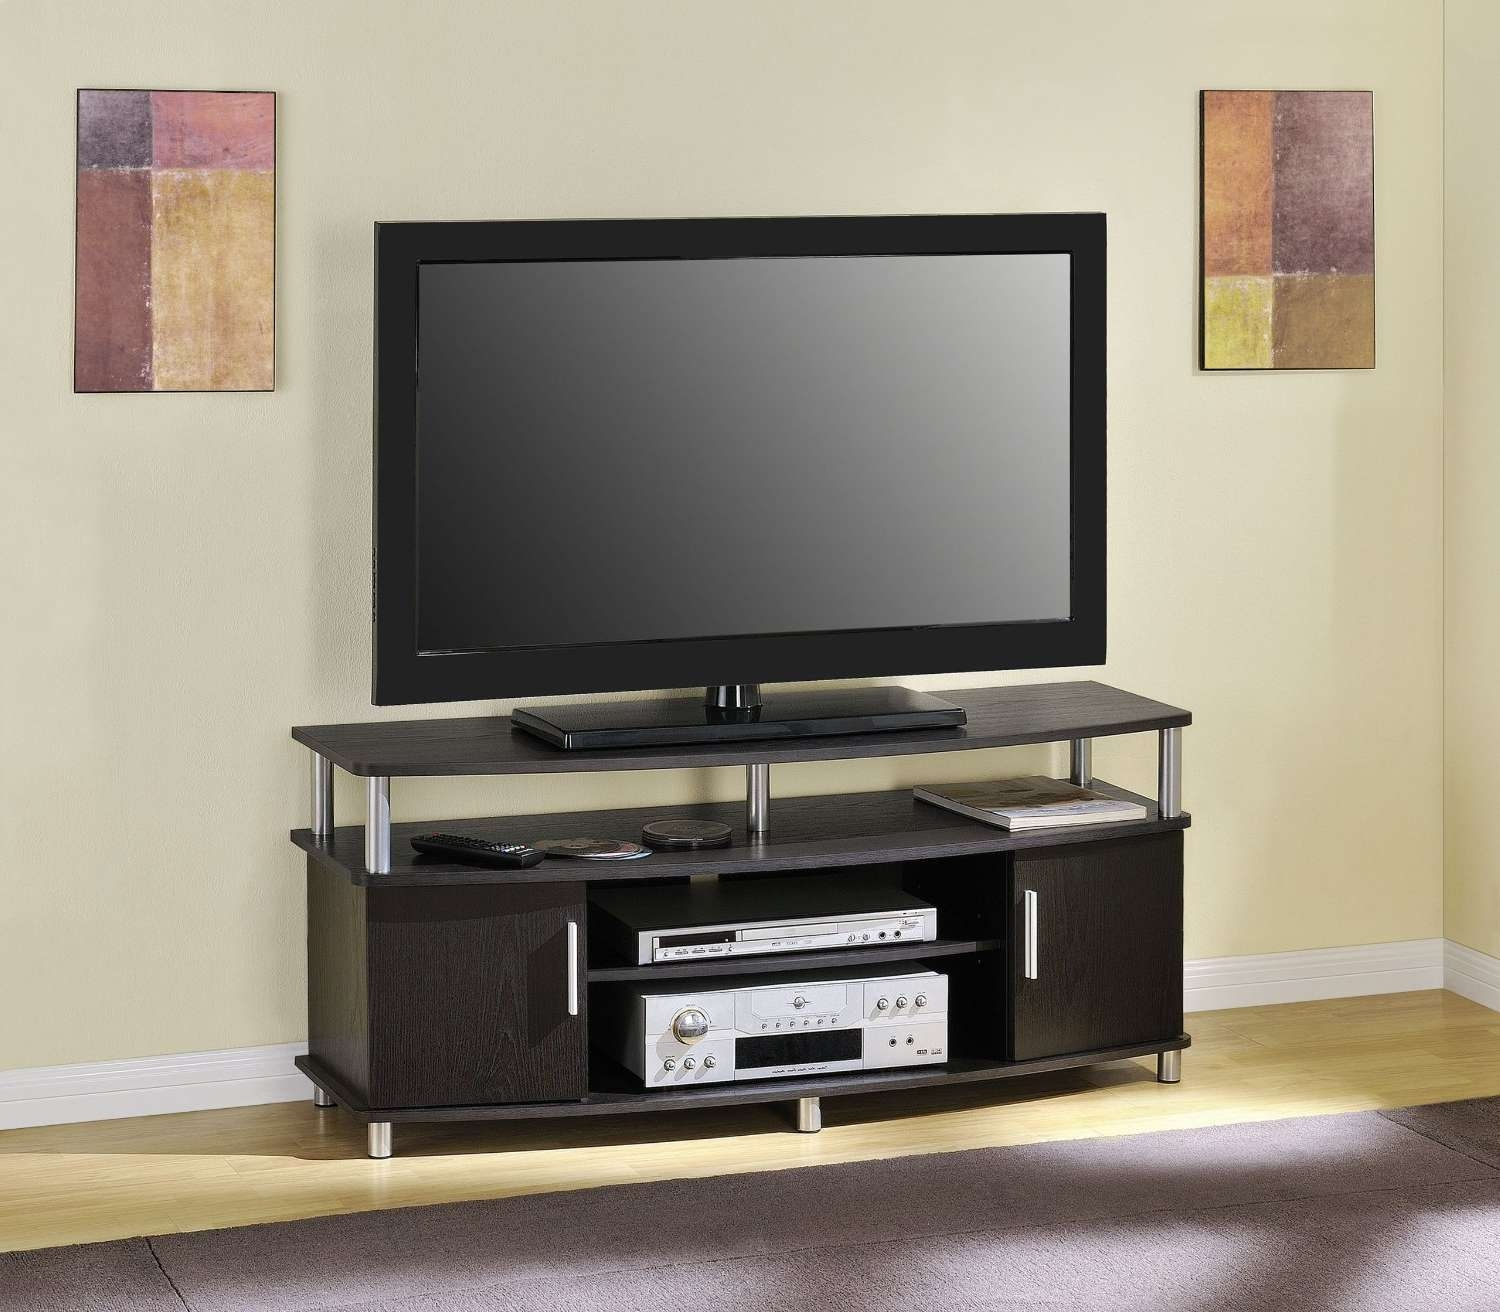 Tv Stands: 7 Best Selling Flat Screen Tv Stands 2017 Intended For Tv Stands 40 Inches Wide (View 2 of 15)